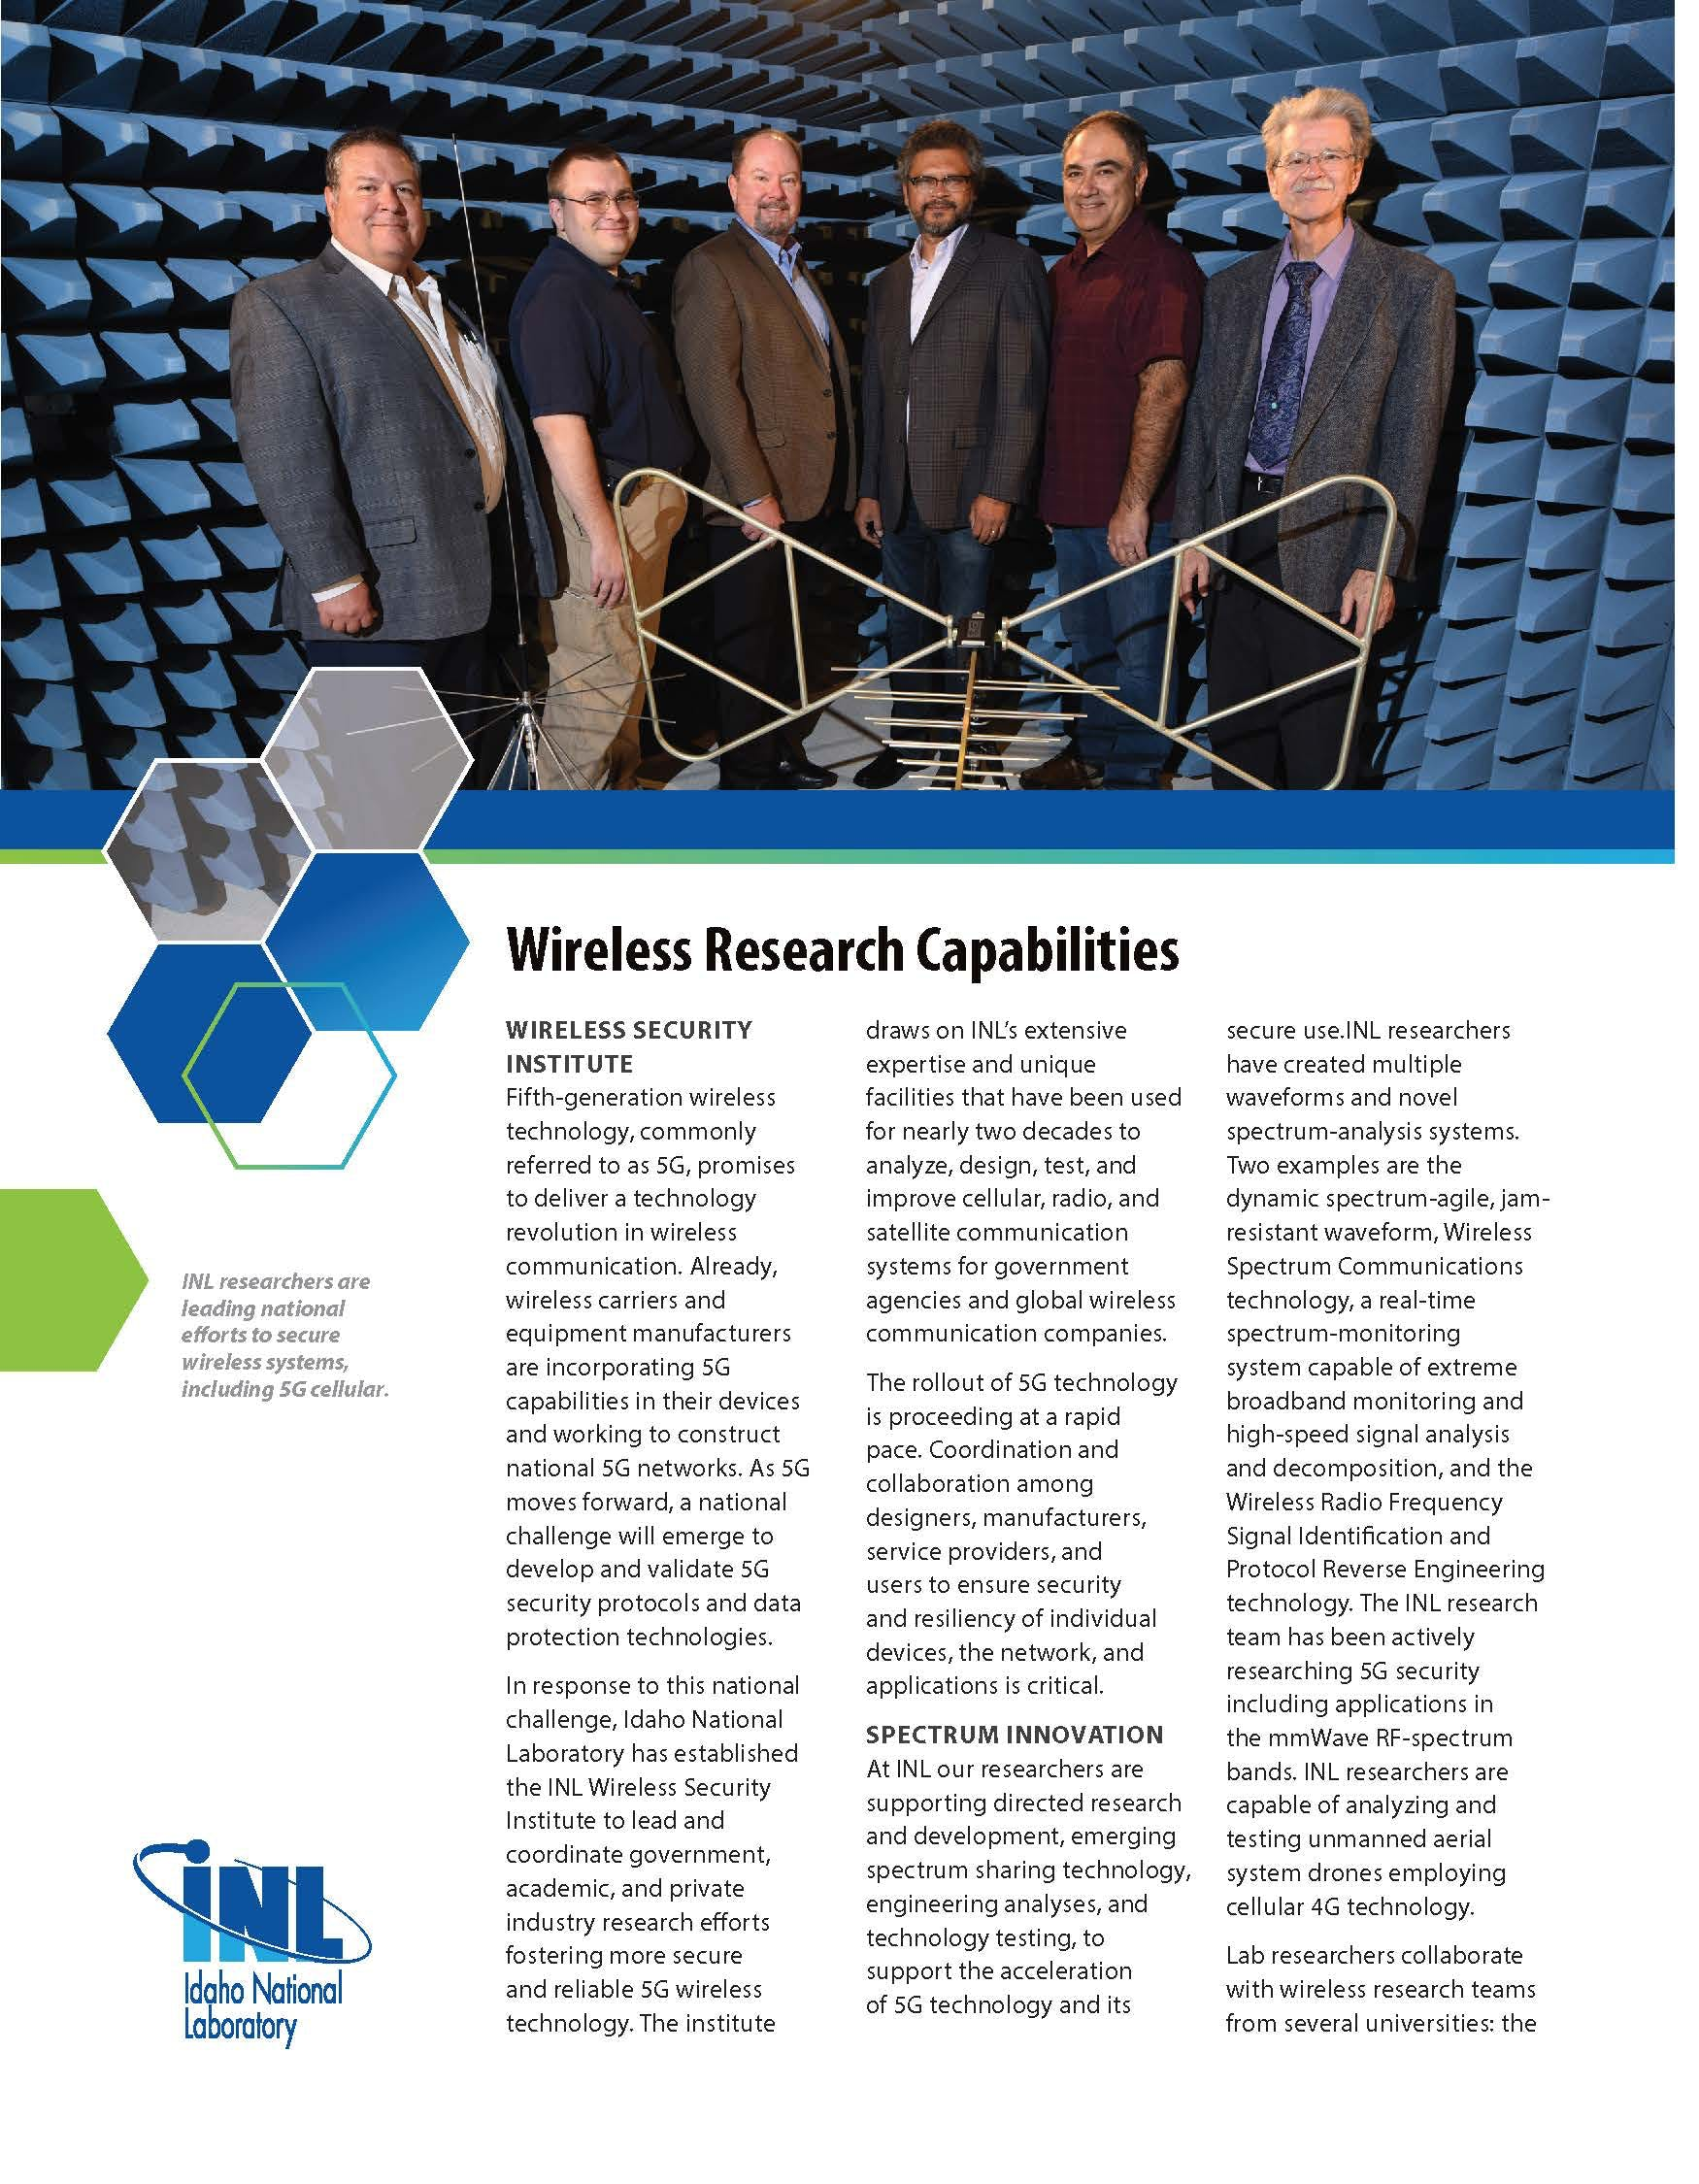 Wireless Research Capabilities R Page